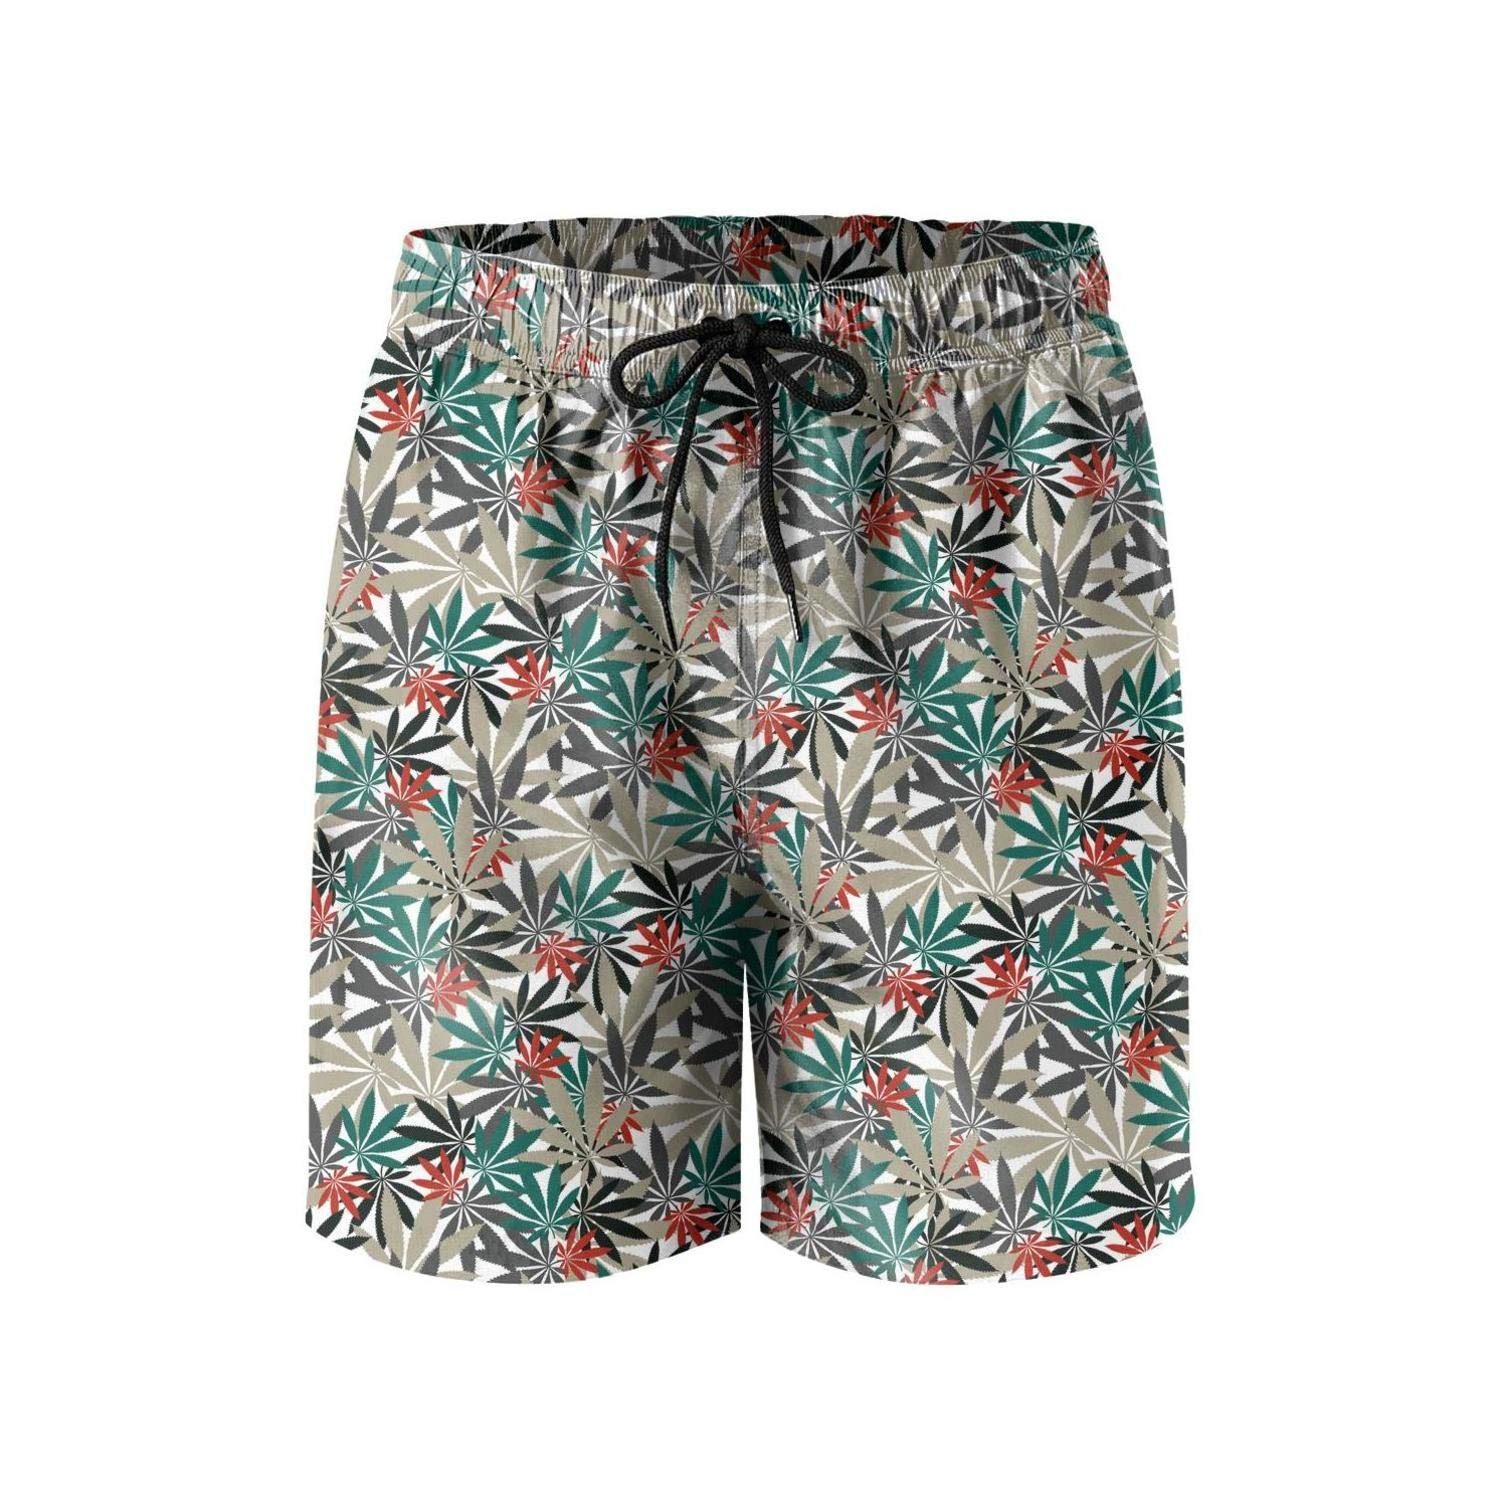 Microfiber Cannabis Chemistry Plant Painting Stretch Board Swimming Trunks Mens Shorts Sporty